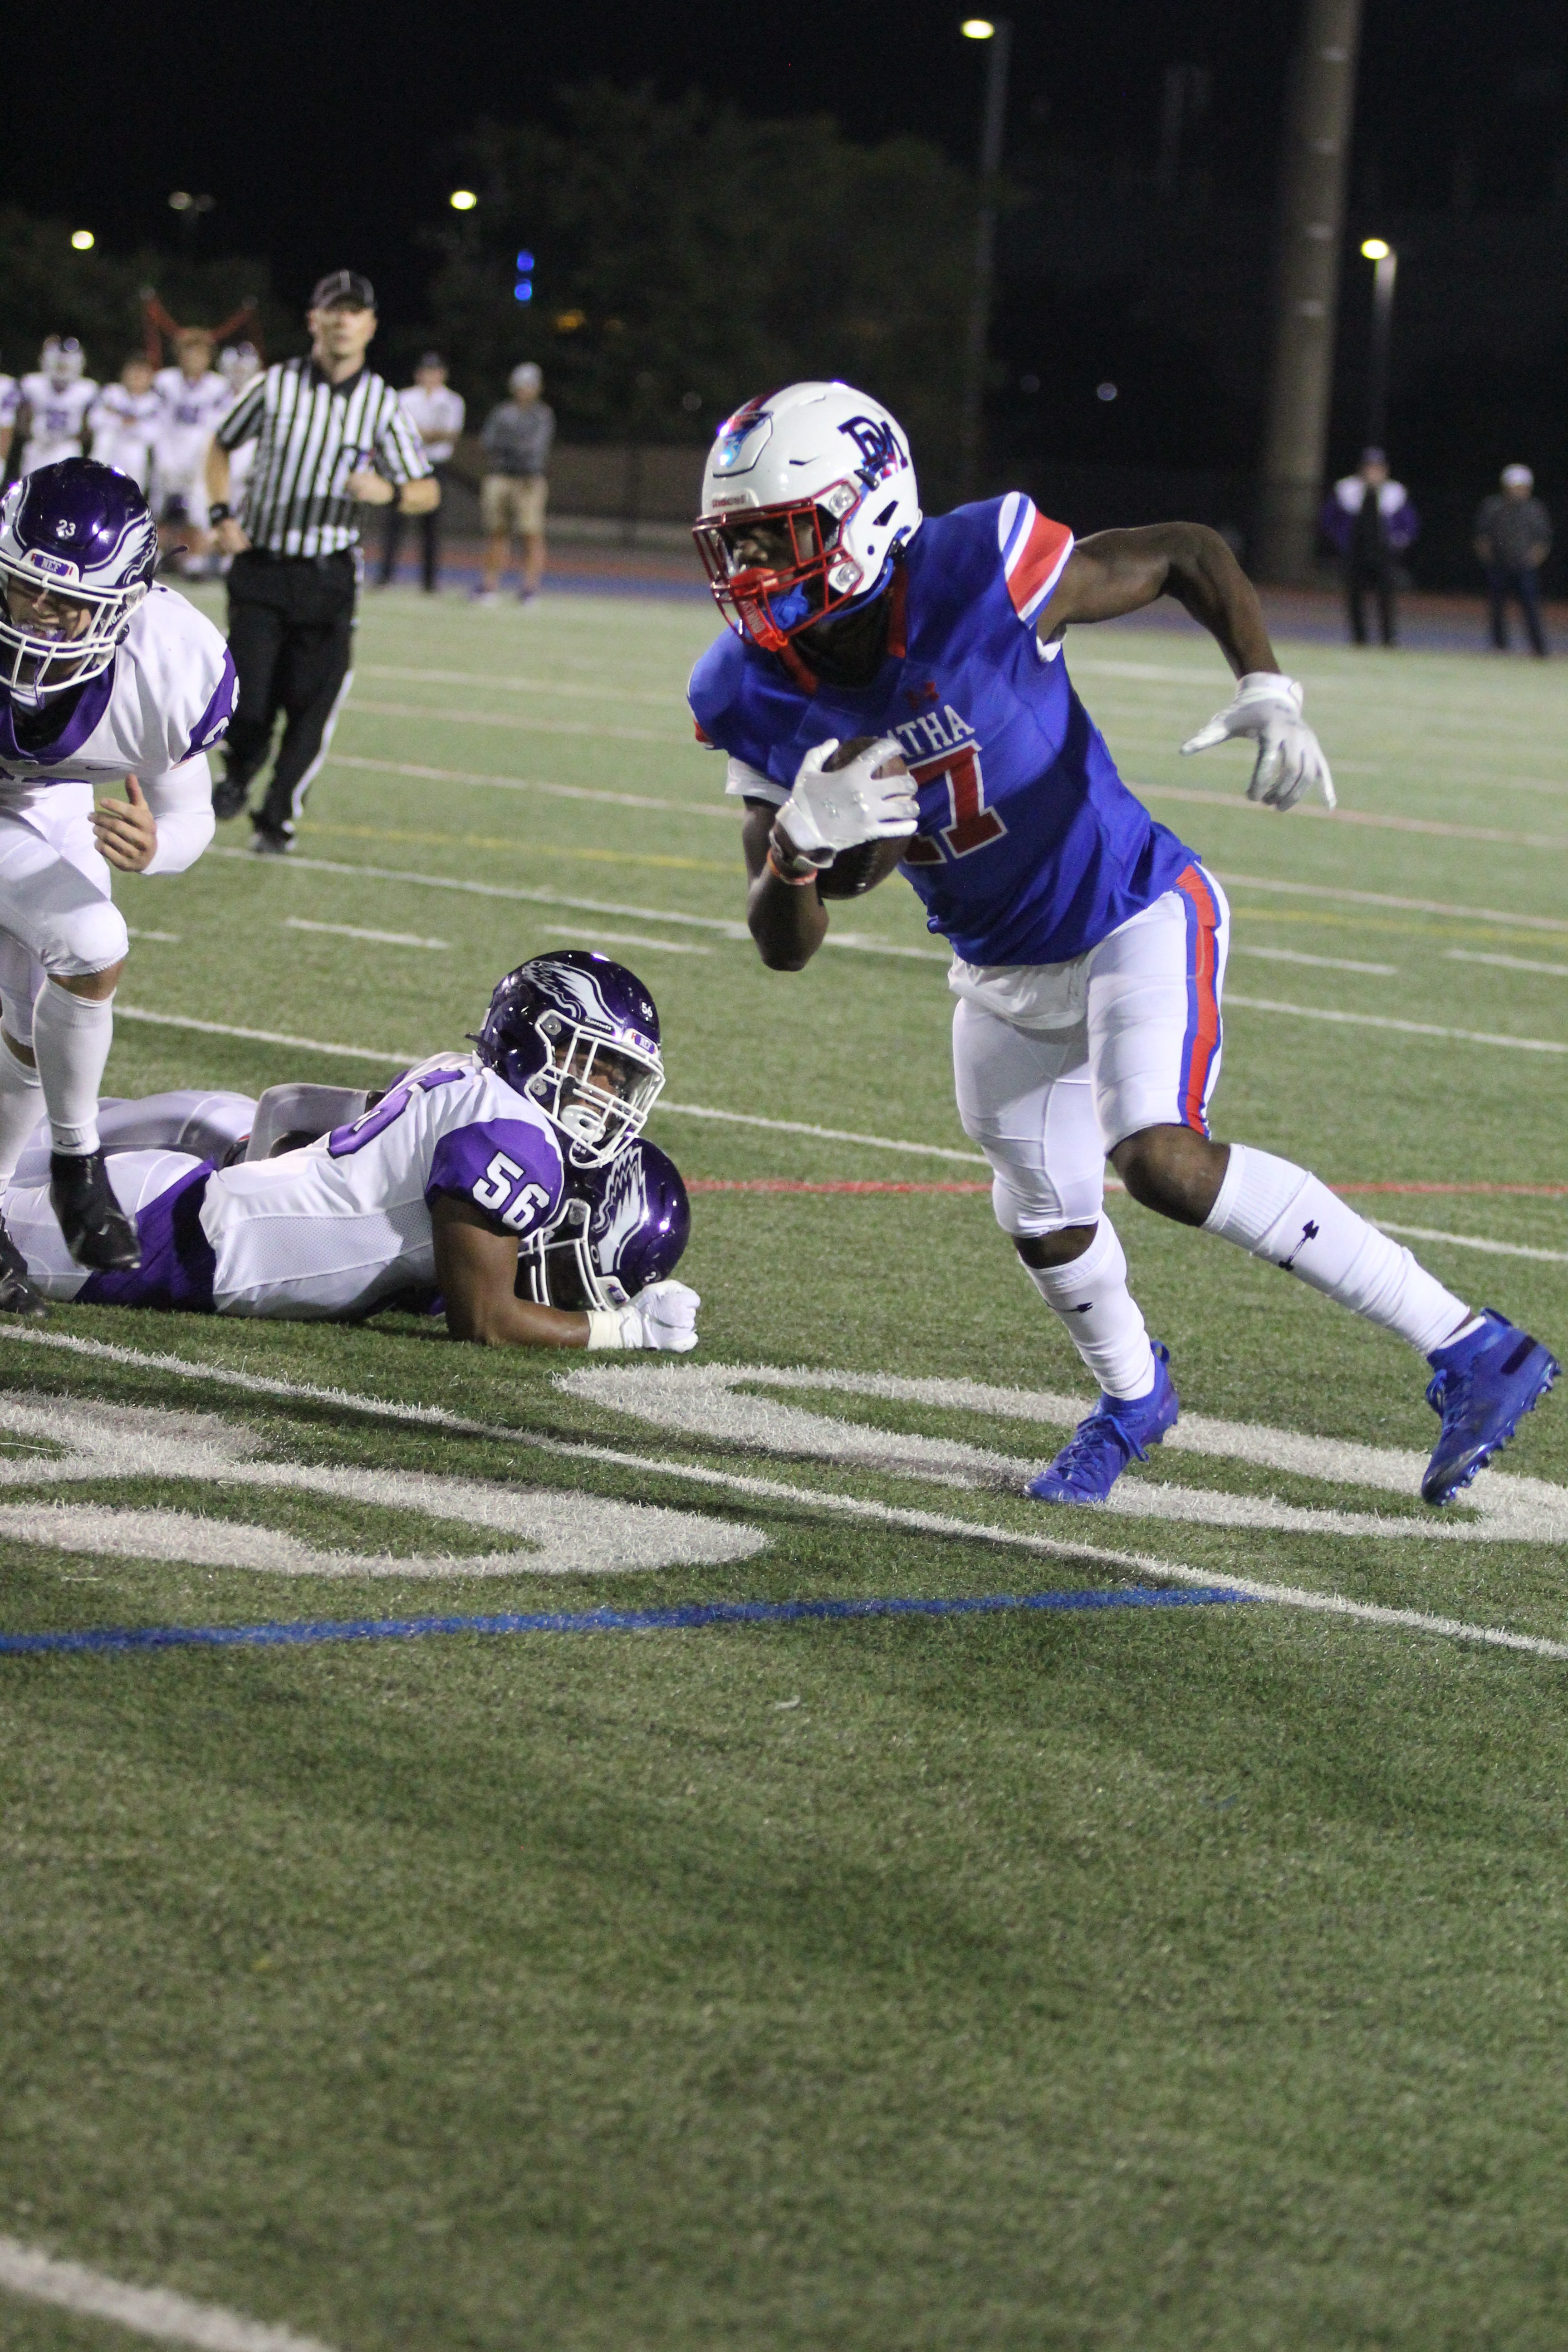 DeMatha opens WCAC play with 30-6 victory over Gonzaga